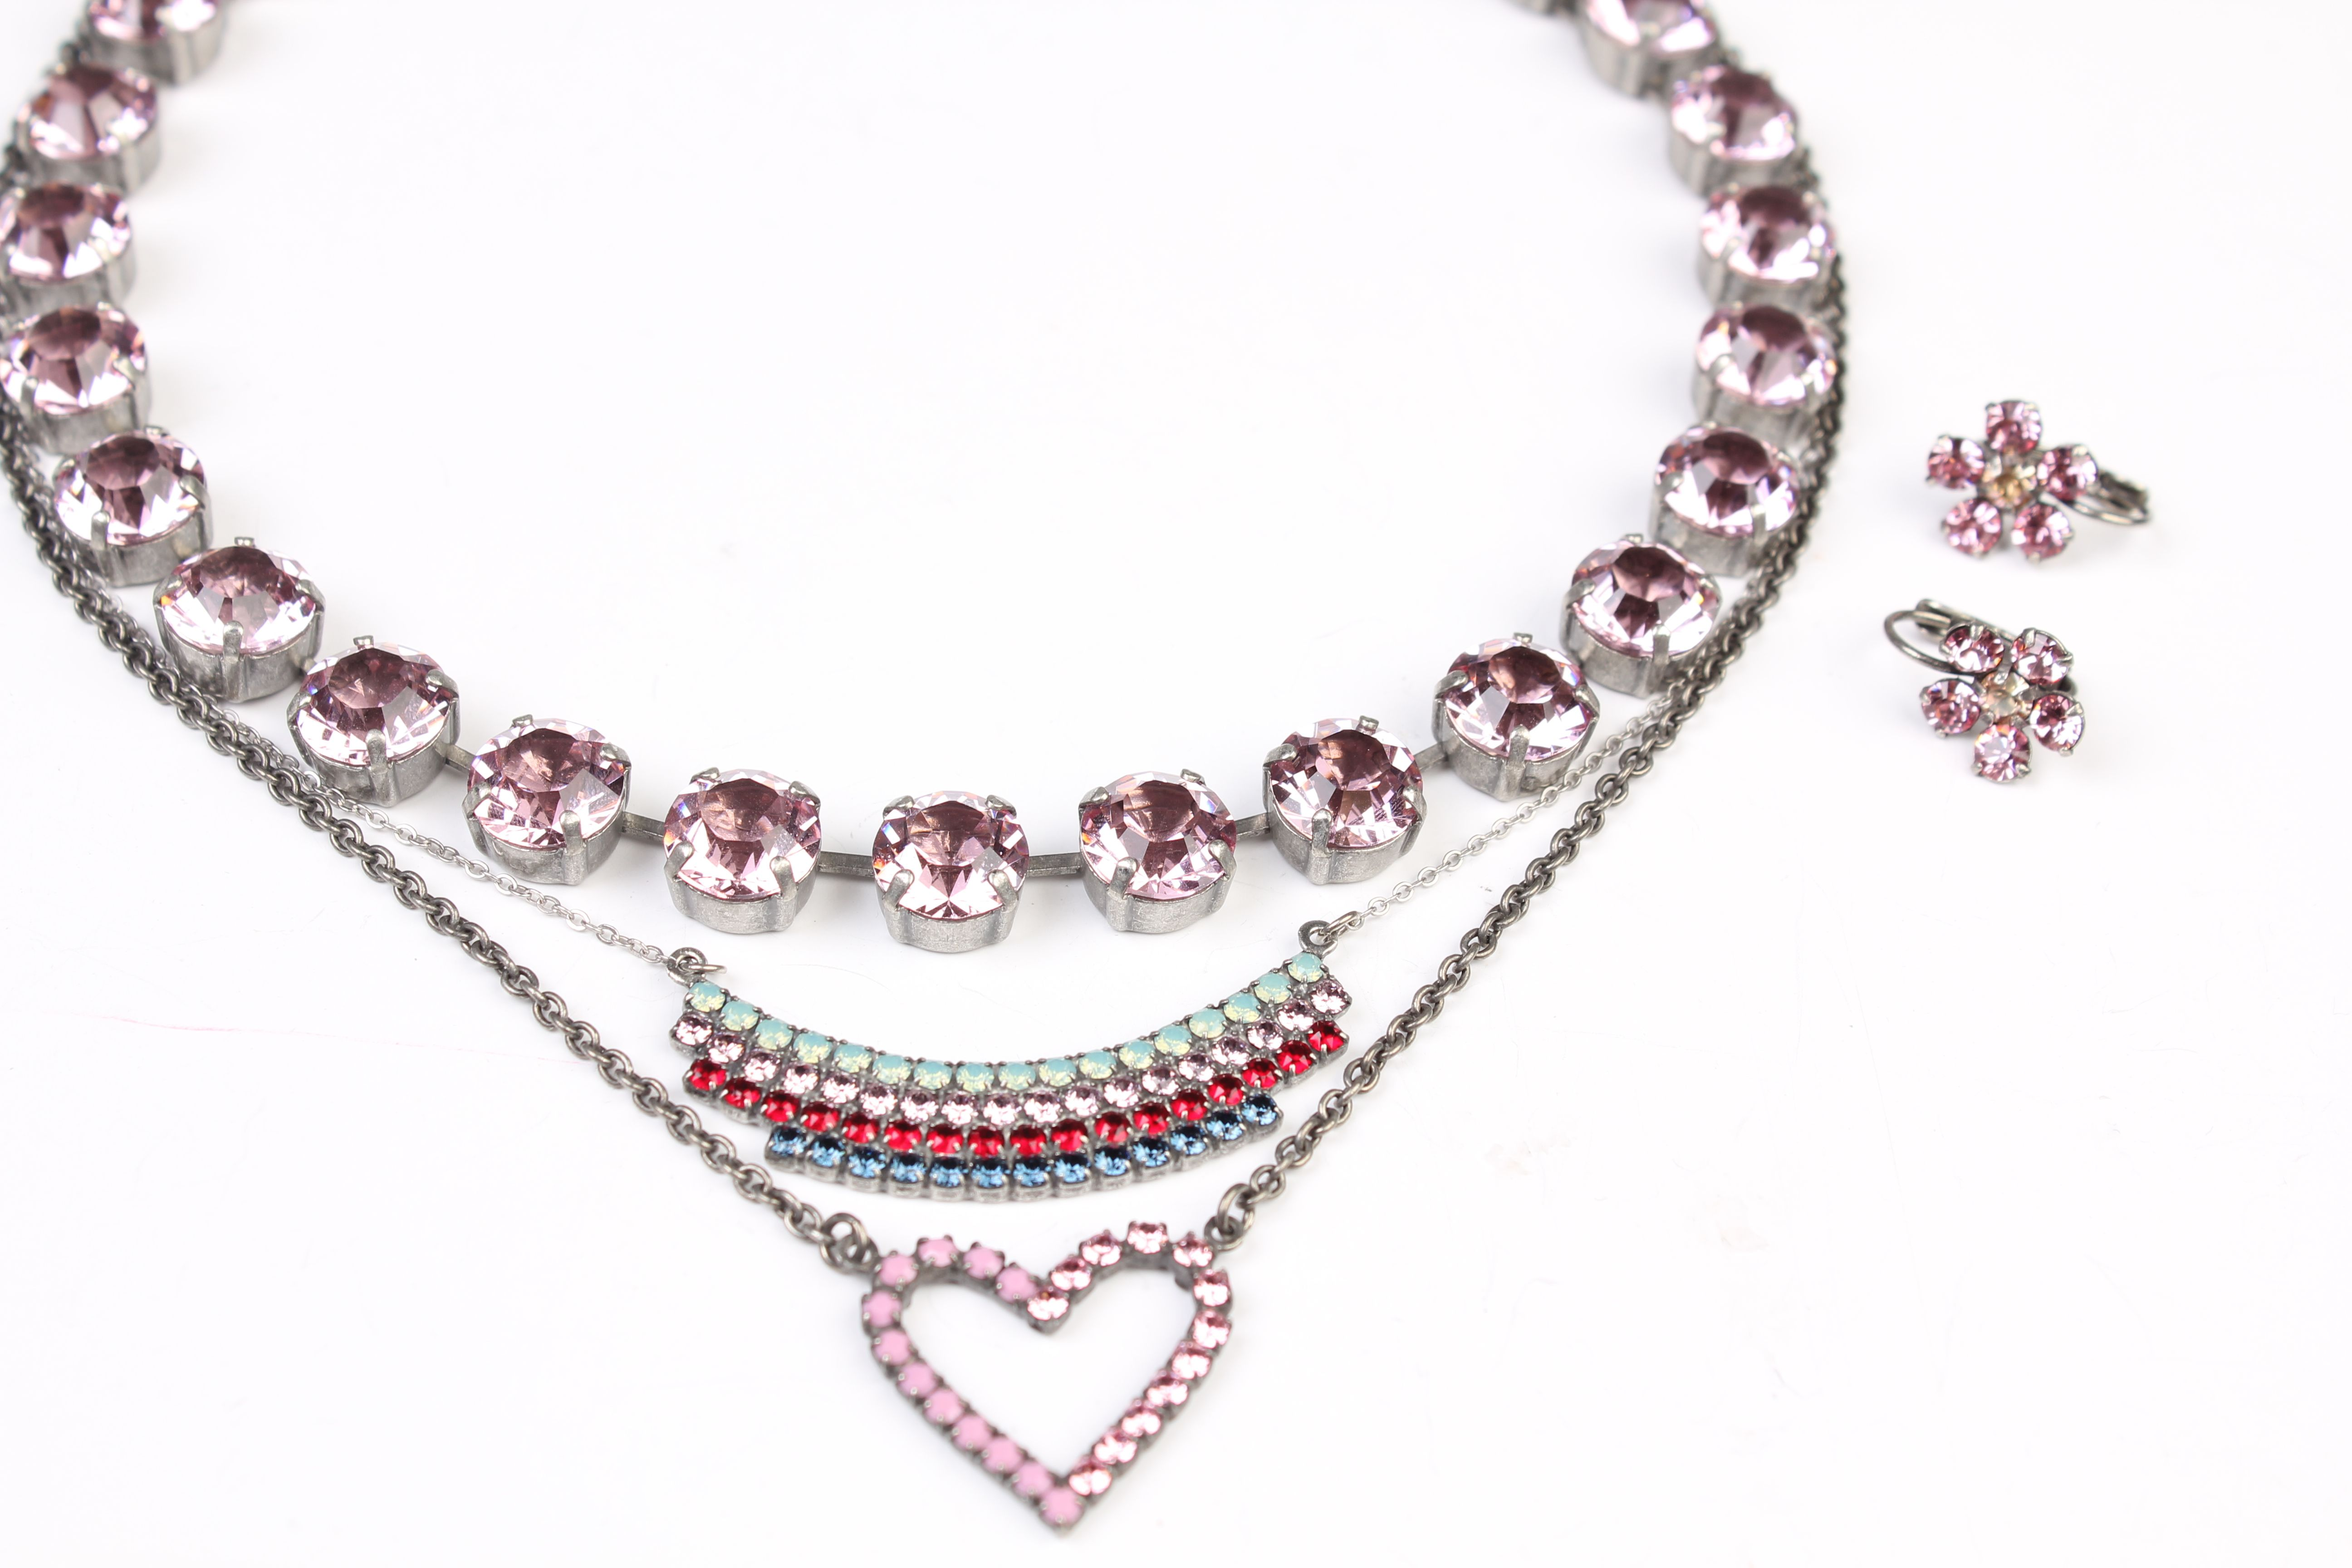 Sabika look necklace - La Vie En Rose Manhattan Choker Paired With Hearts Stripes Striped Necklace Celebrations Light